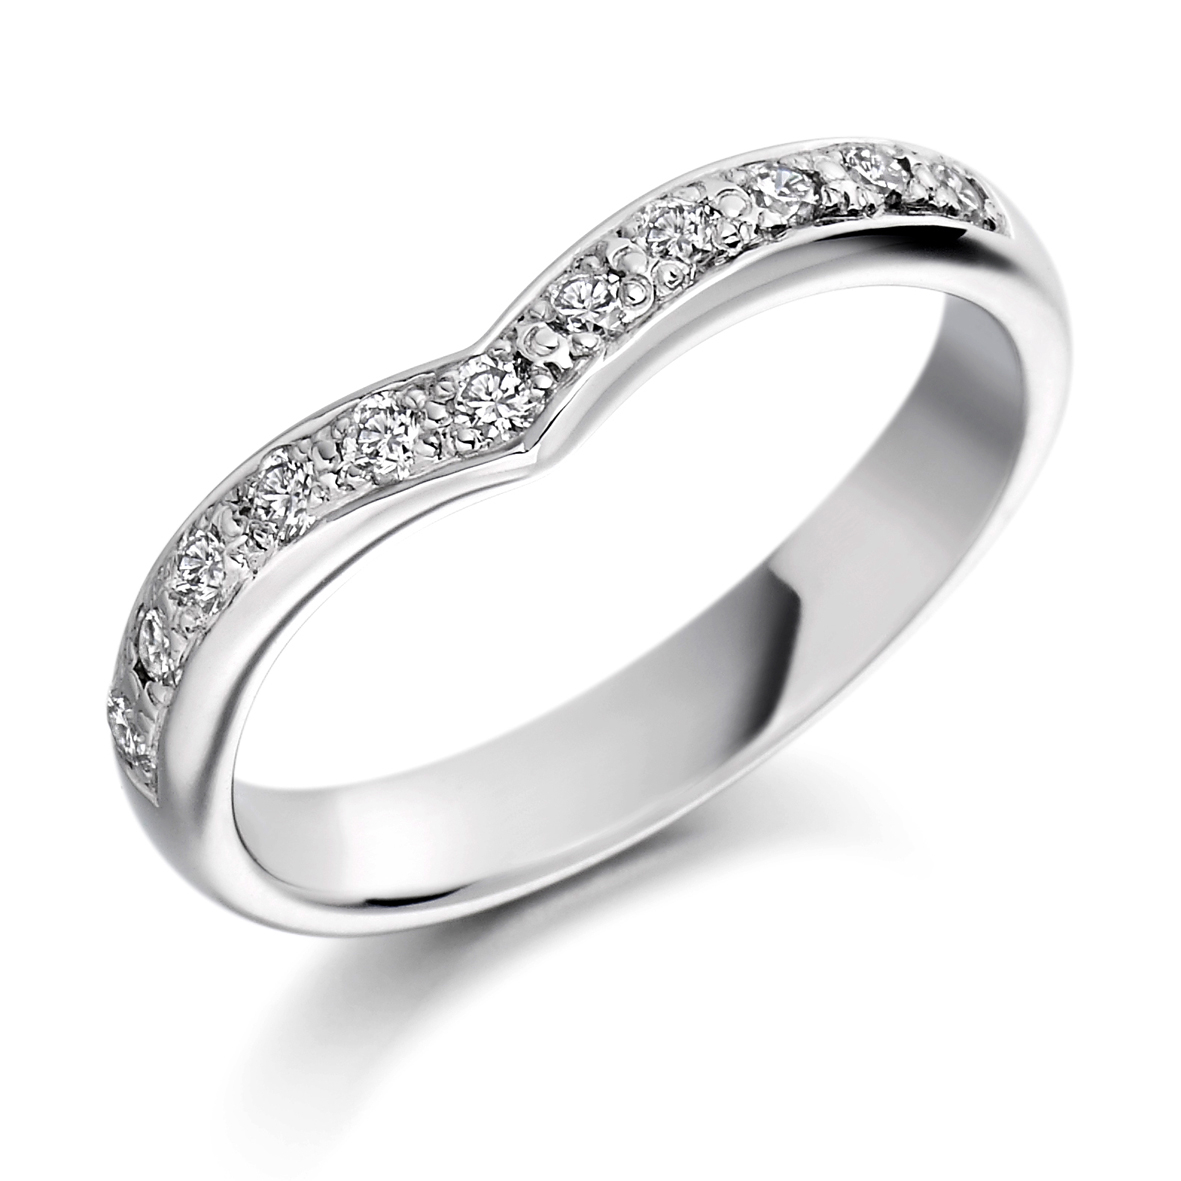 Ring Ida241 Throughout Latest V Shape Diamond Wedding Bands (Gallery 21 of 25)